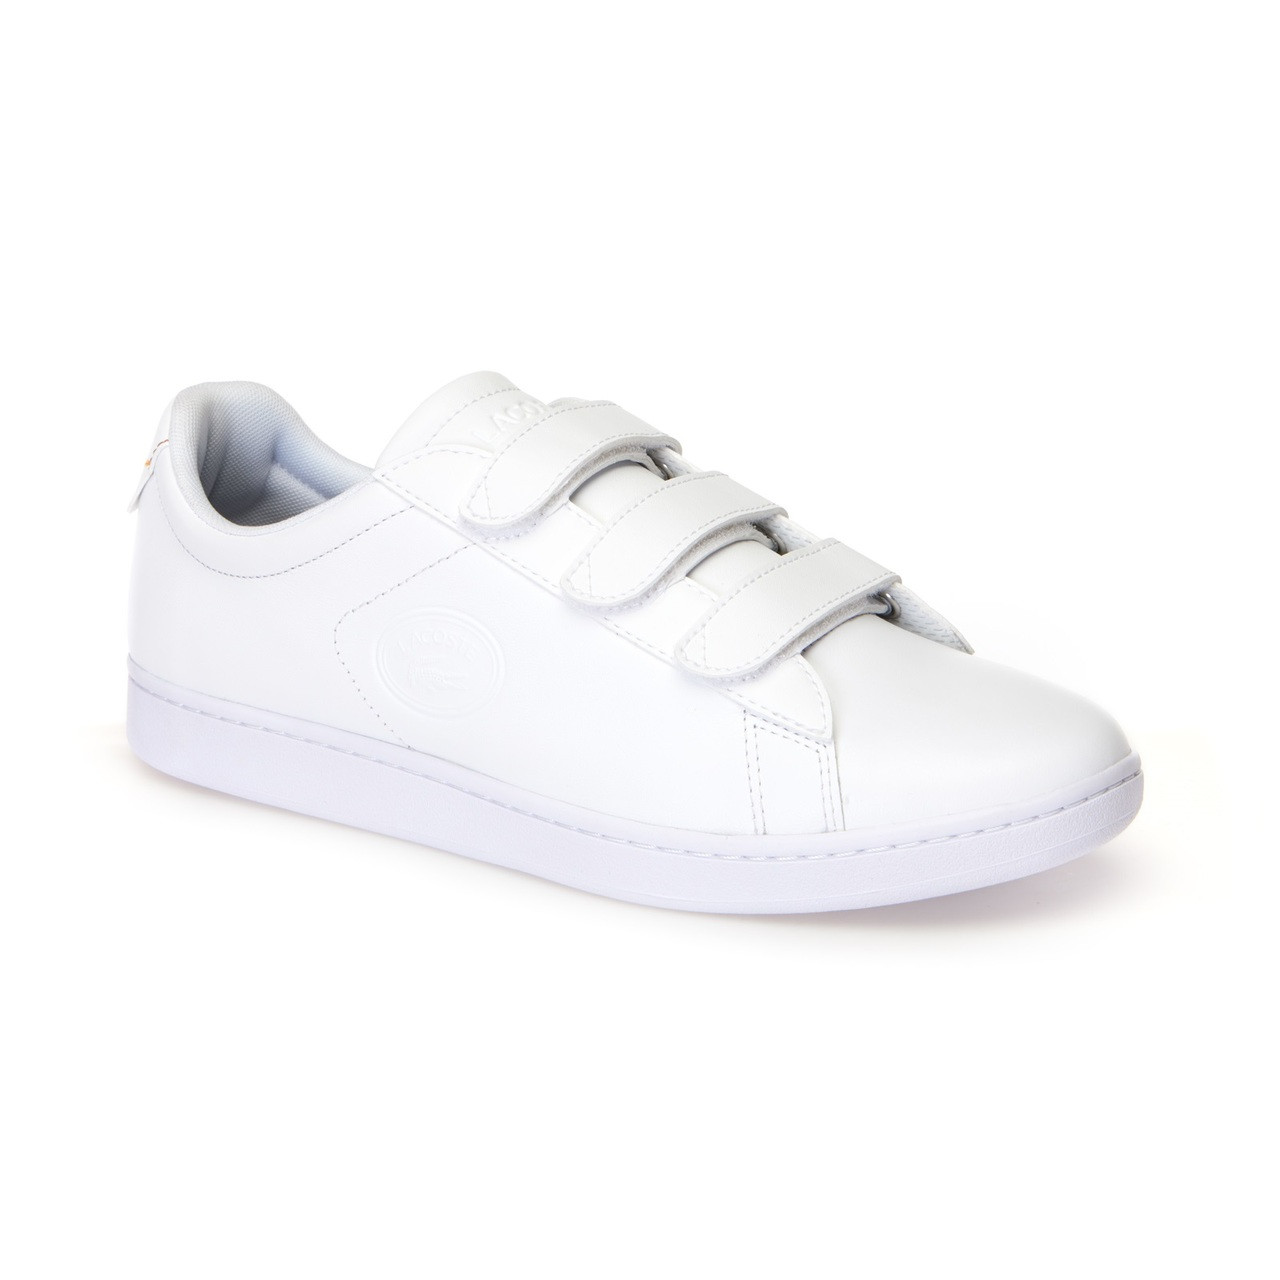 8ab89a380 Lacoste Men Shoes Carnaby Evo Strap 318 Color White White 7-36SPM001821G